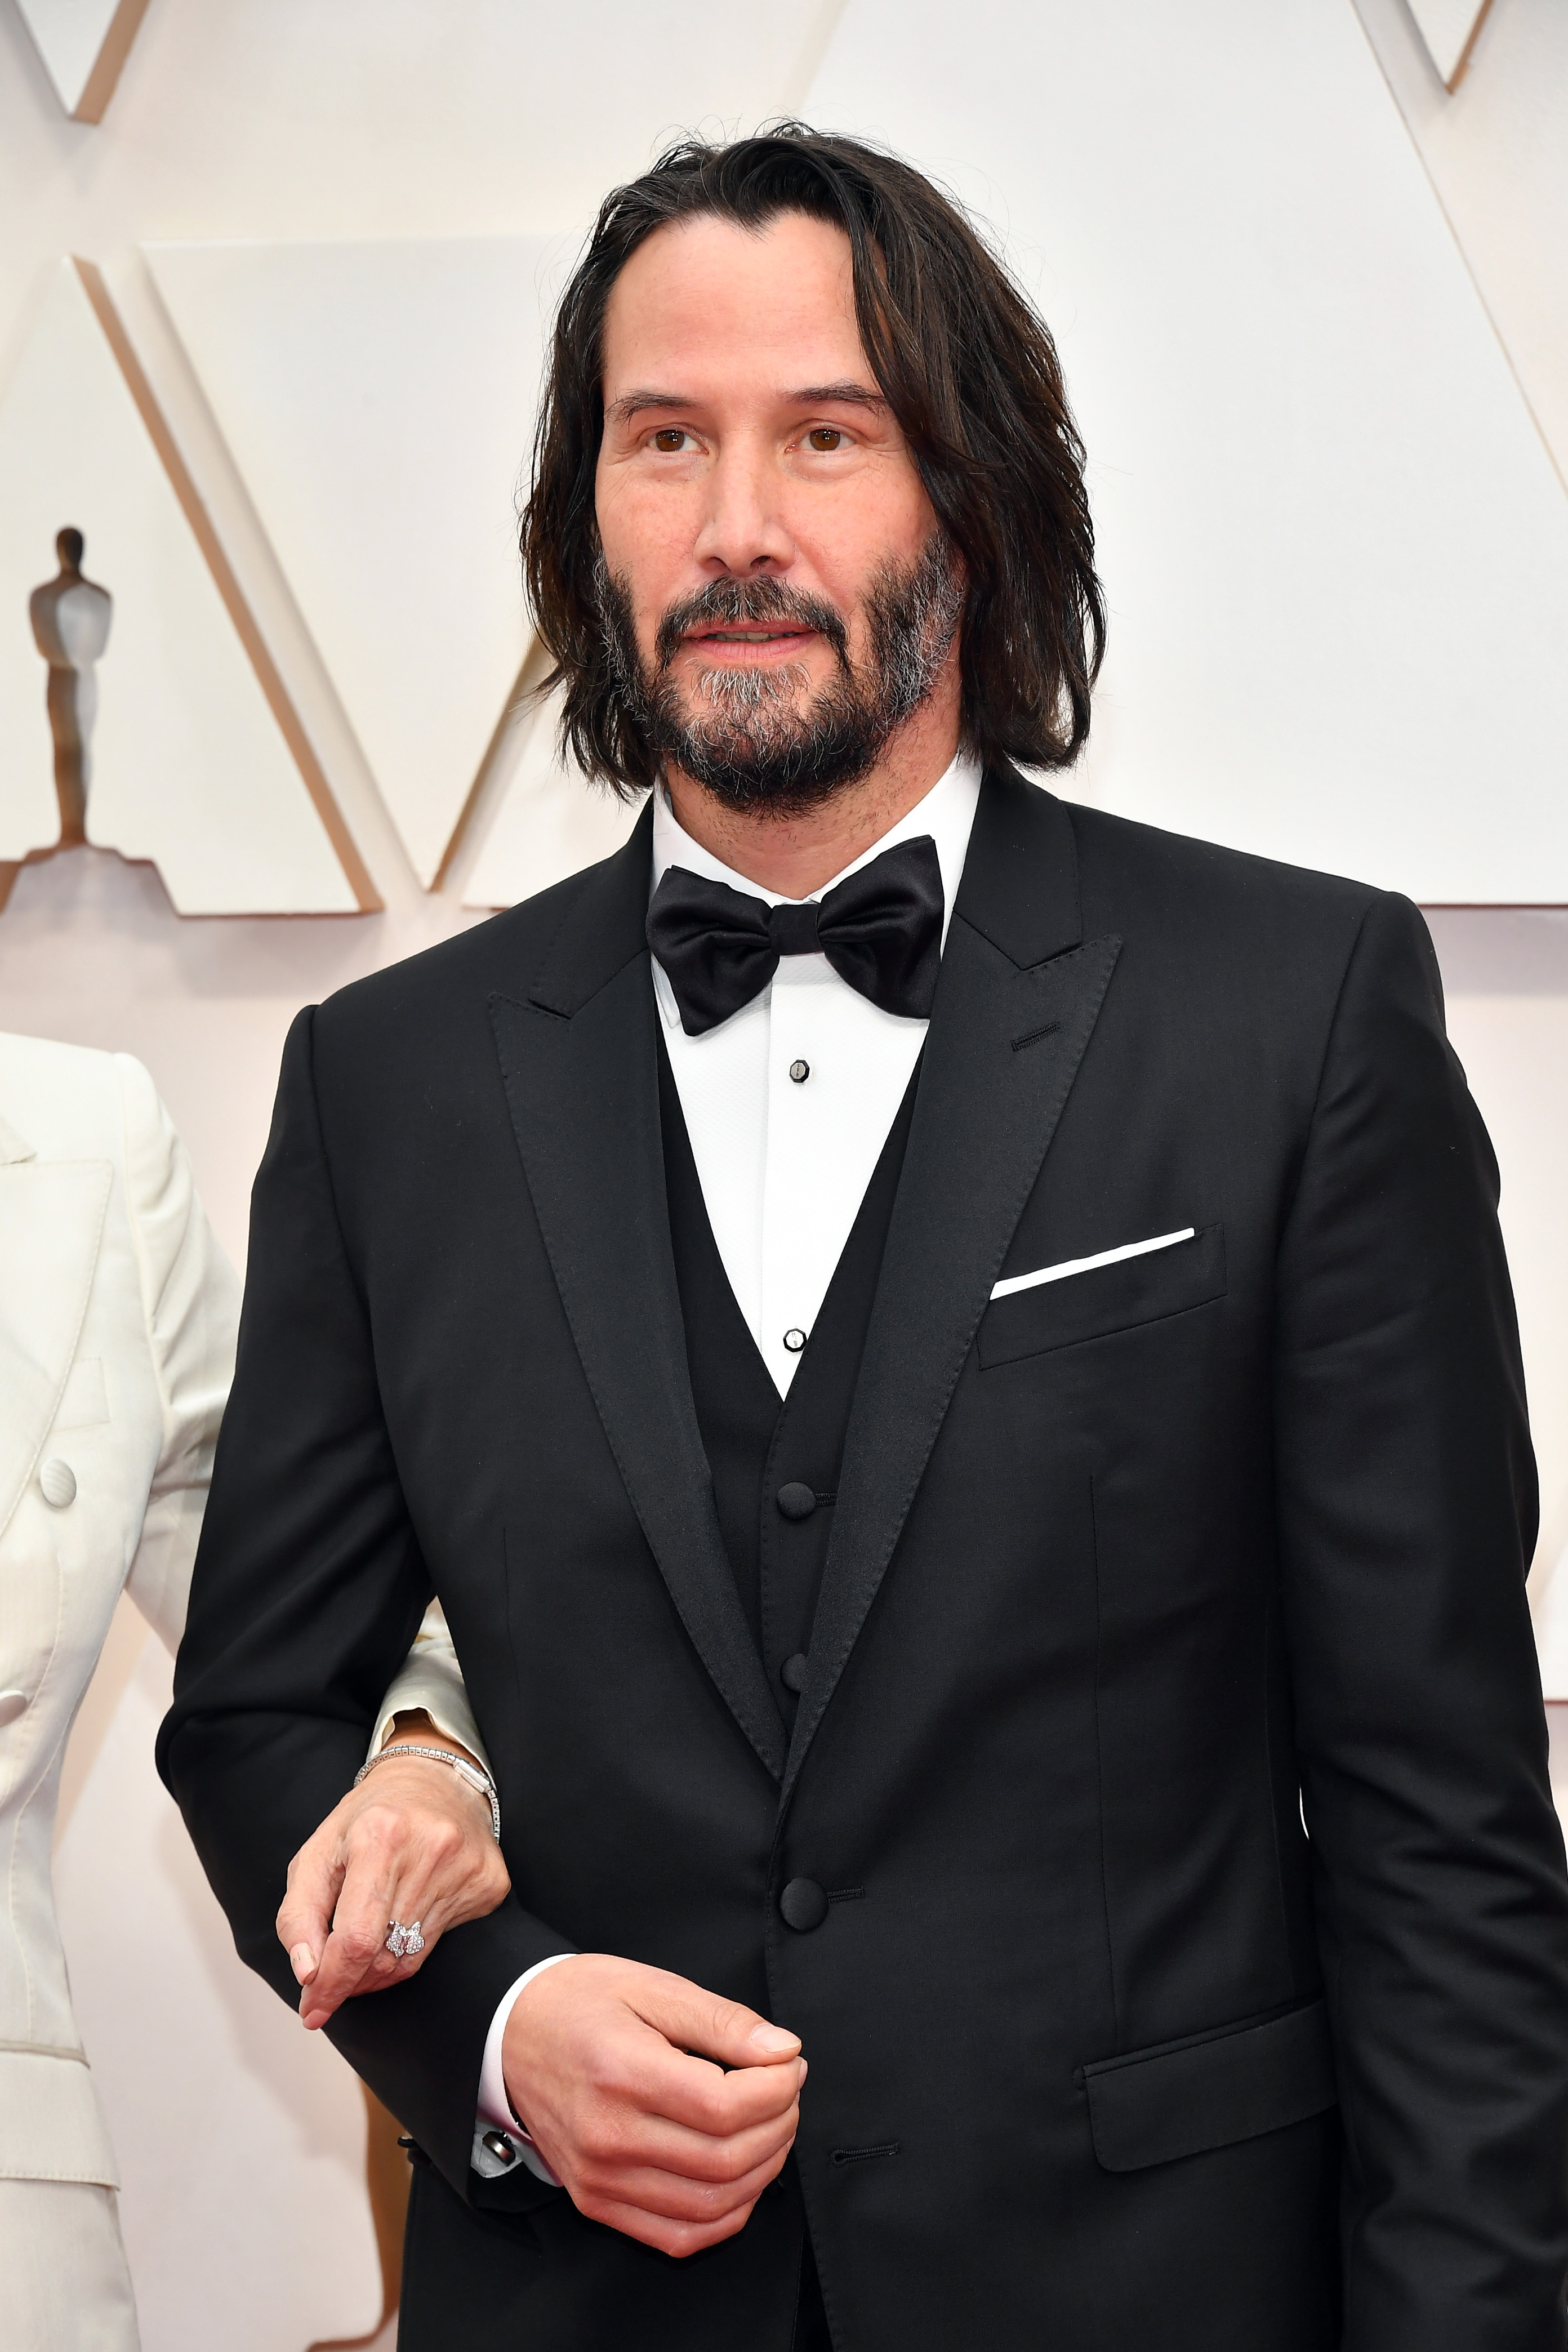 HOLLYWOOD, CALIFORNIA - FEBRUARY 09: Keanu Reeve attends the 92nd Annual Academy Awards at Hollywood and Highland on February 09, 2020 in Hollywood, California. (Photo by Amy Sussman/Getty Images)